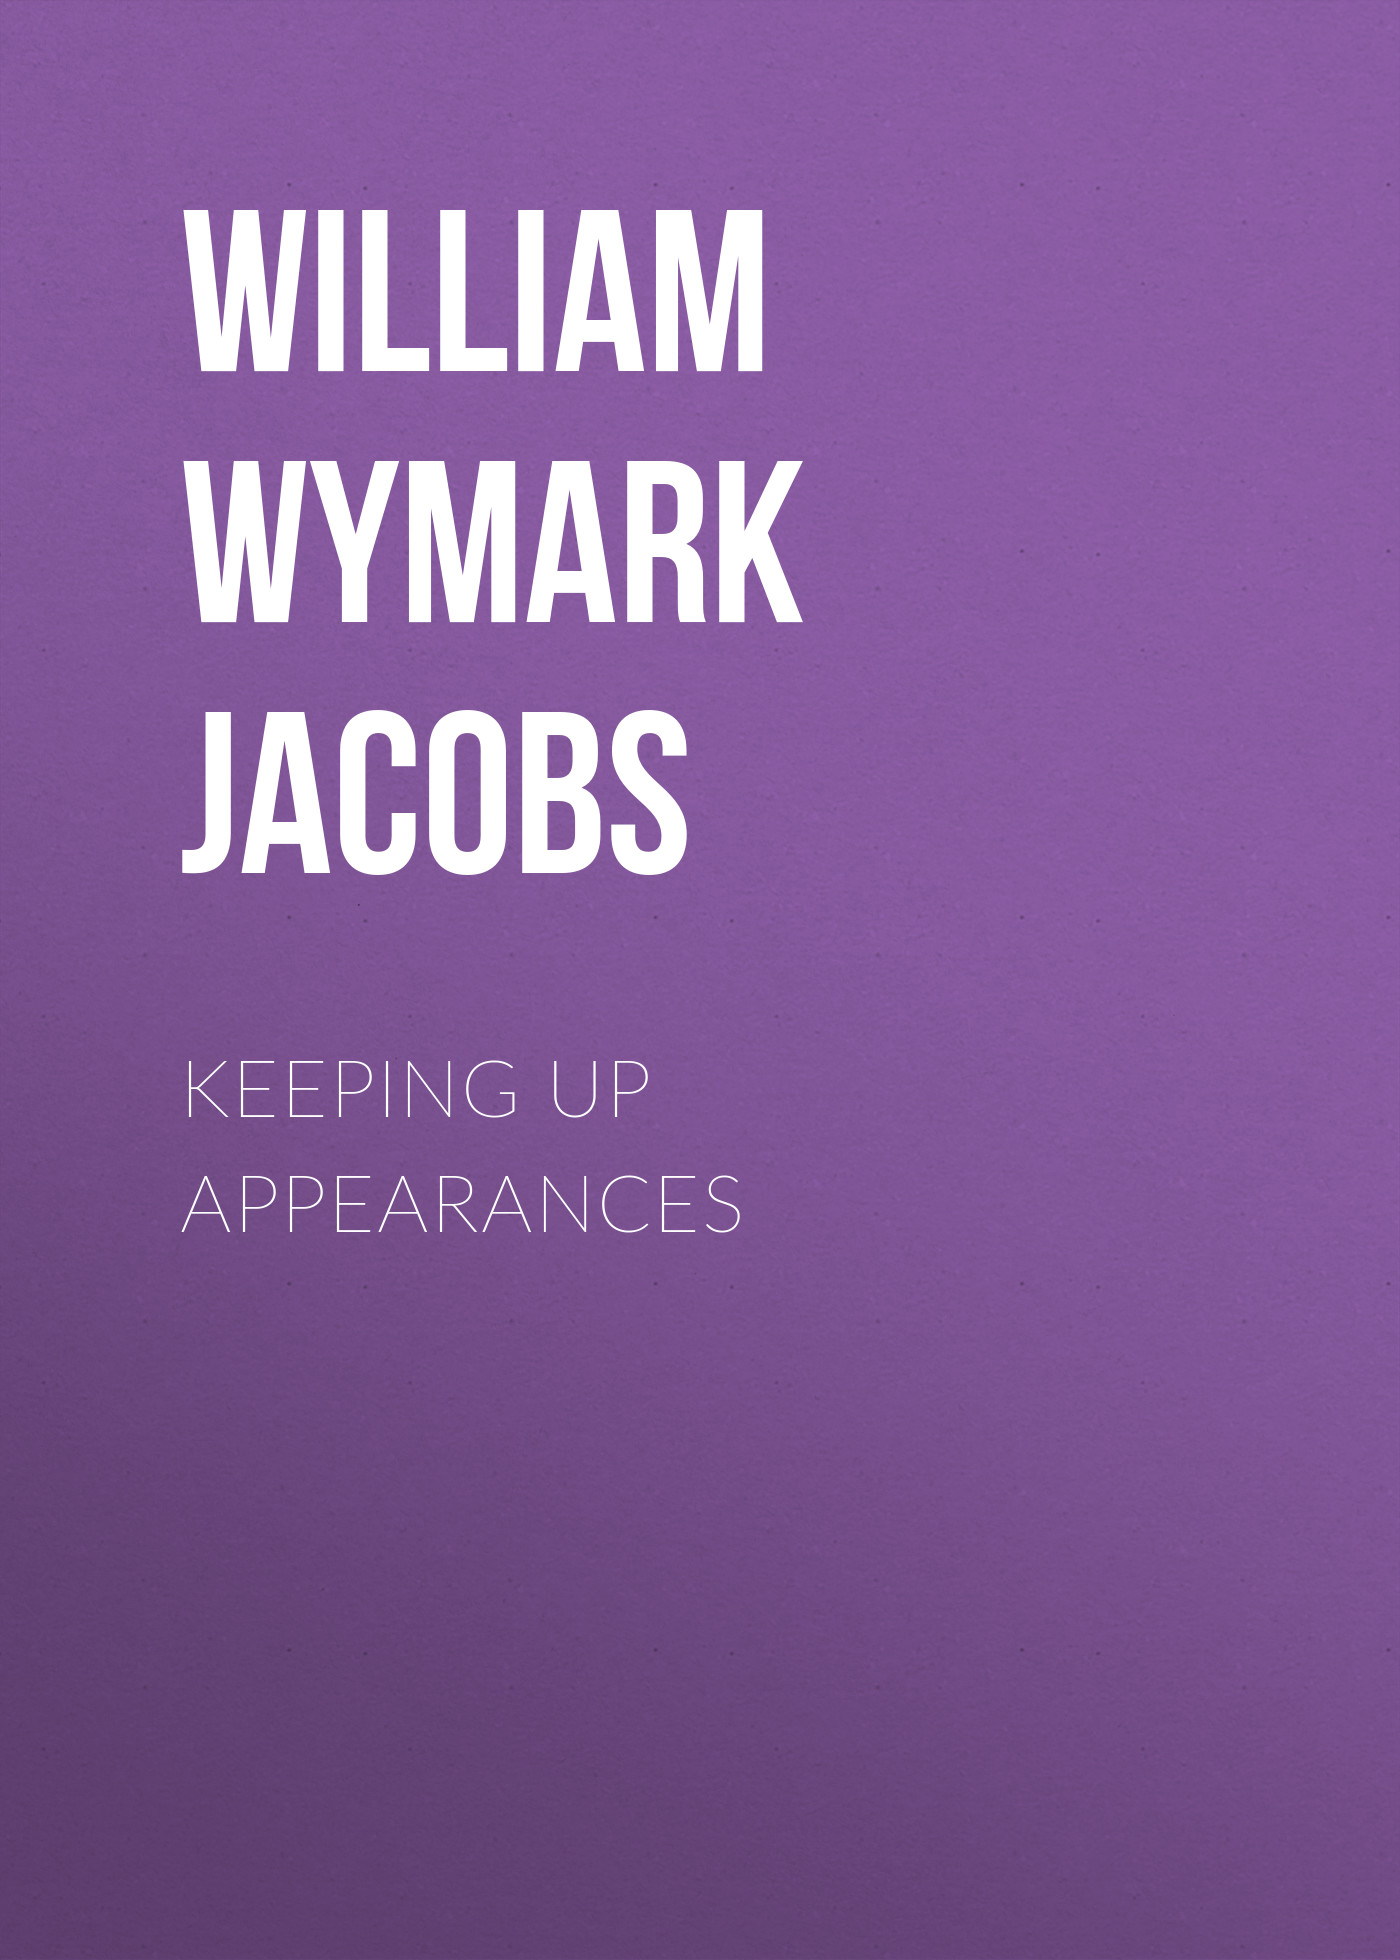 William Wymark Jacobs Keeping Up Appearances